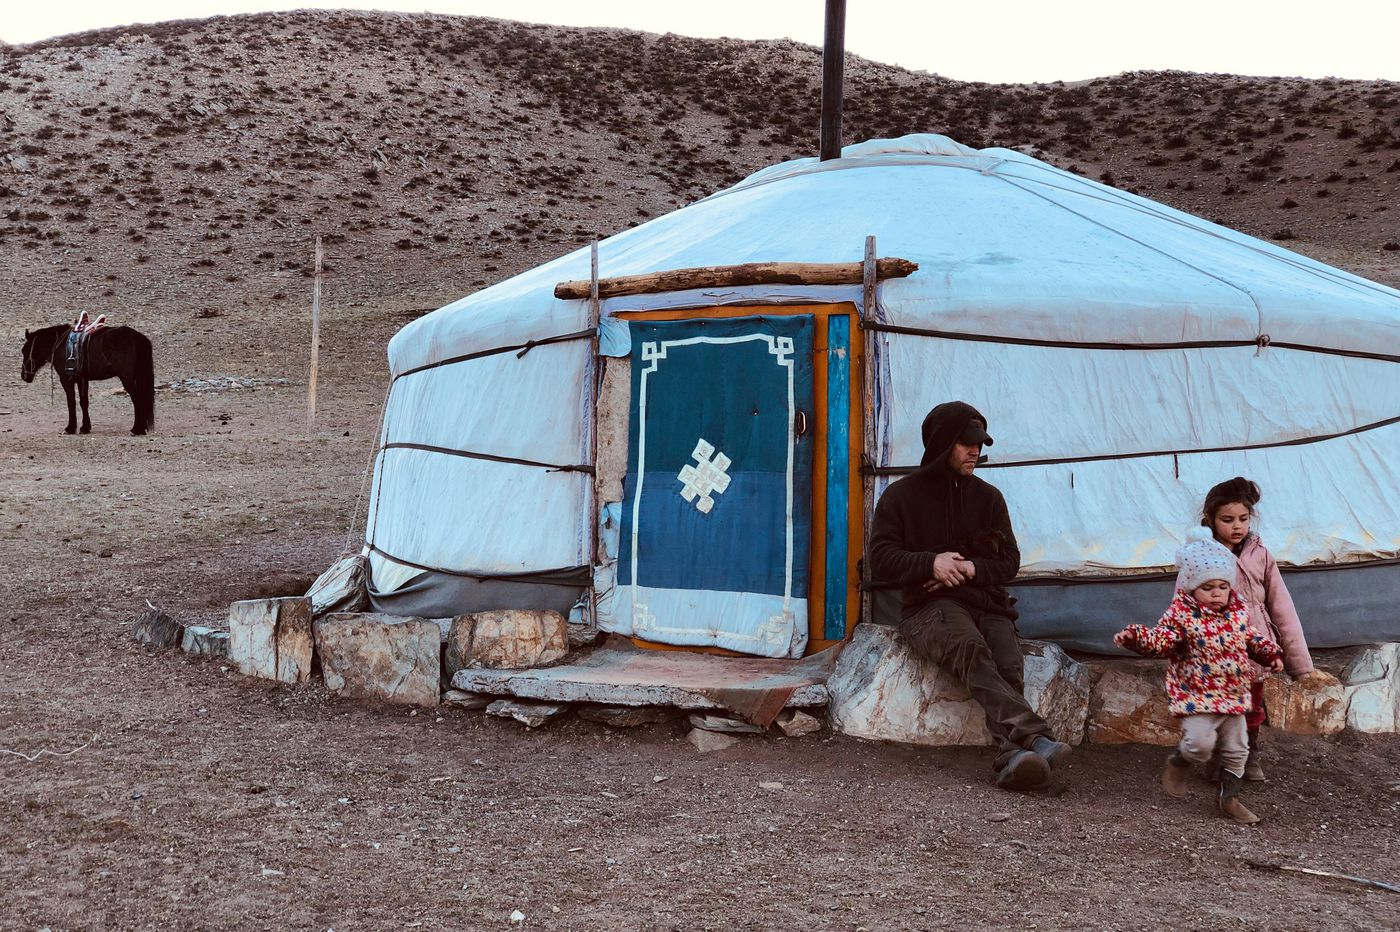 On the Mongolian steppe: No phone, no pool, no pets (i.e., don't get attached to the animals)